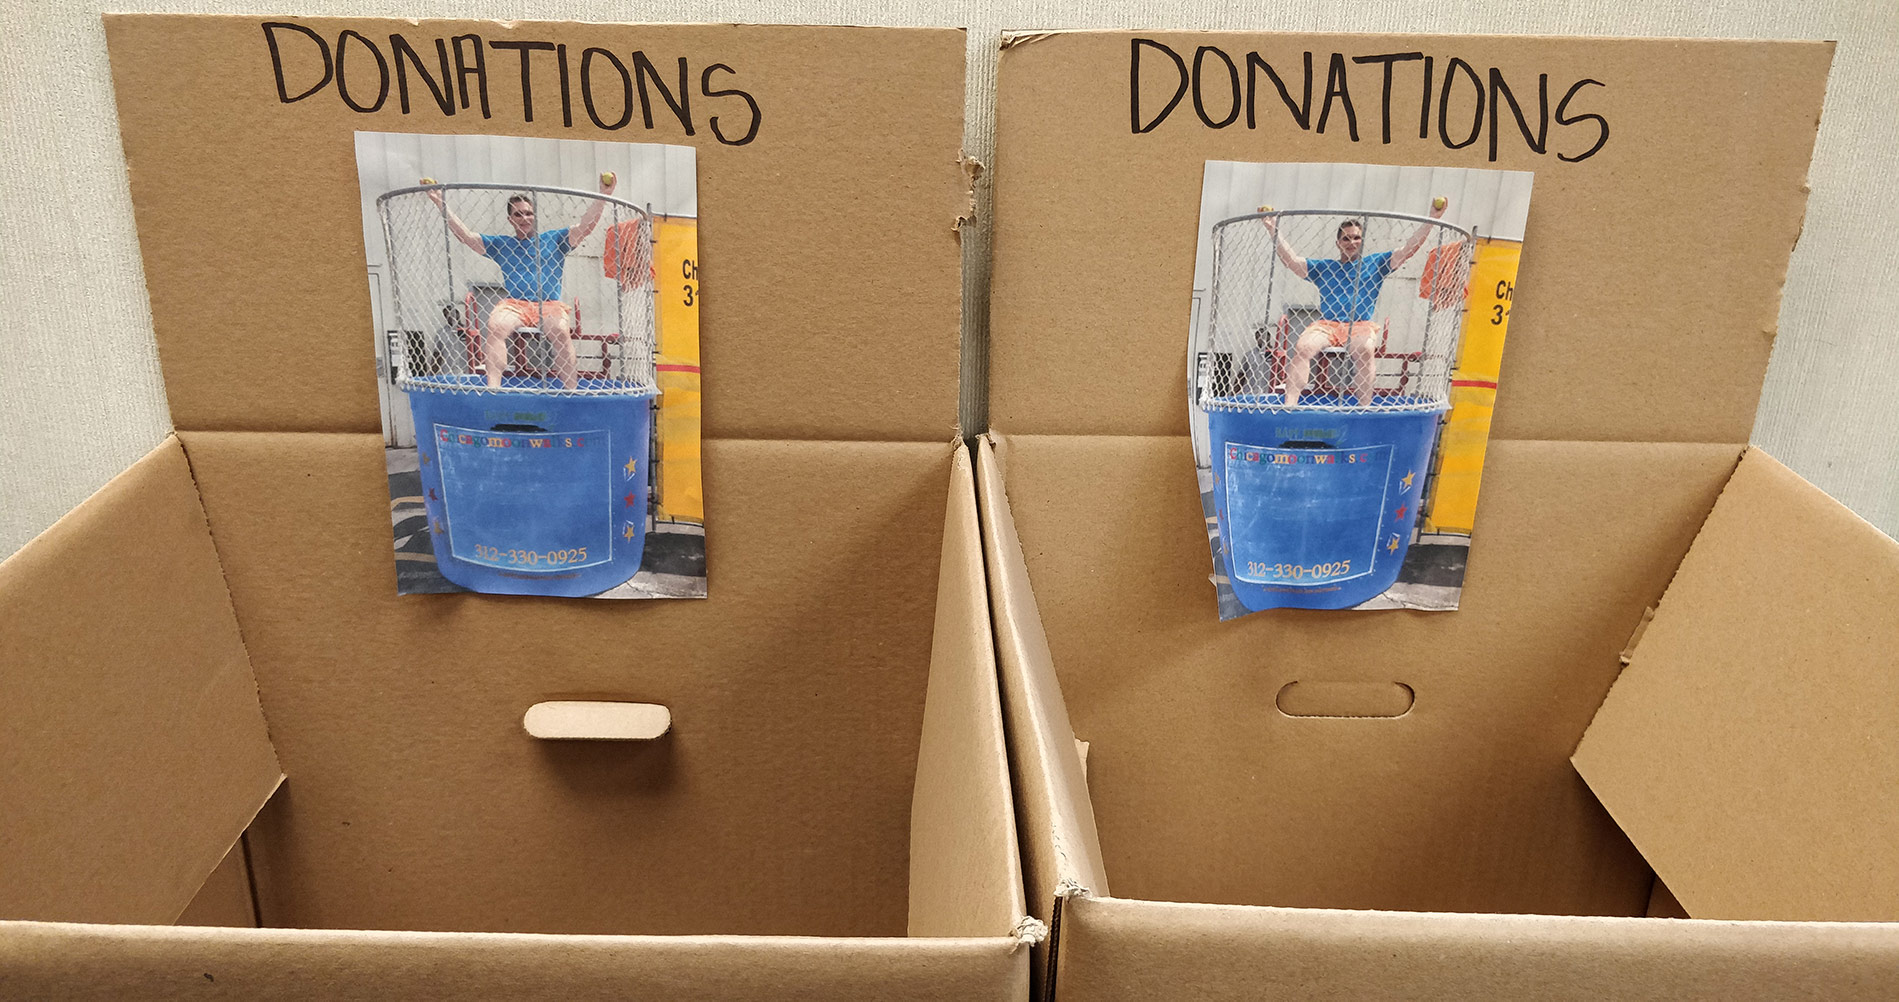 Donations for Albany Park Community Center